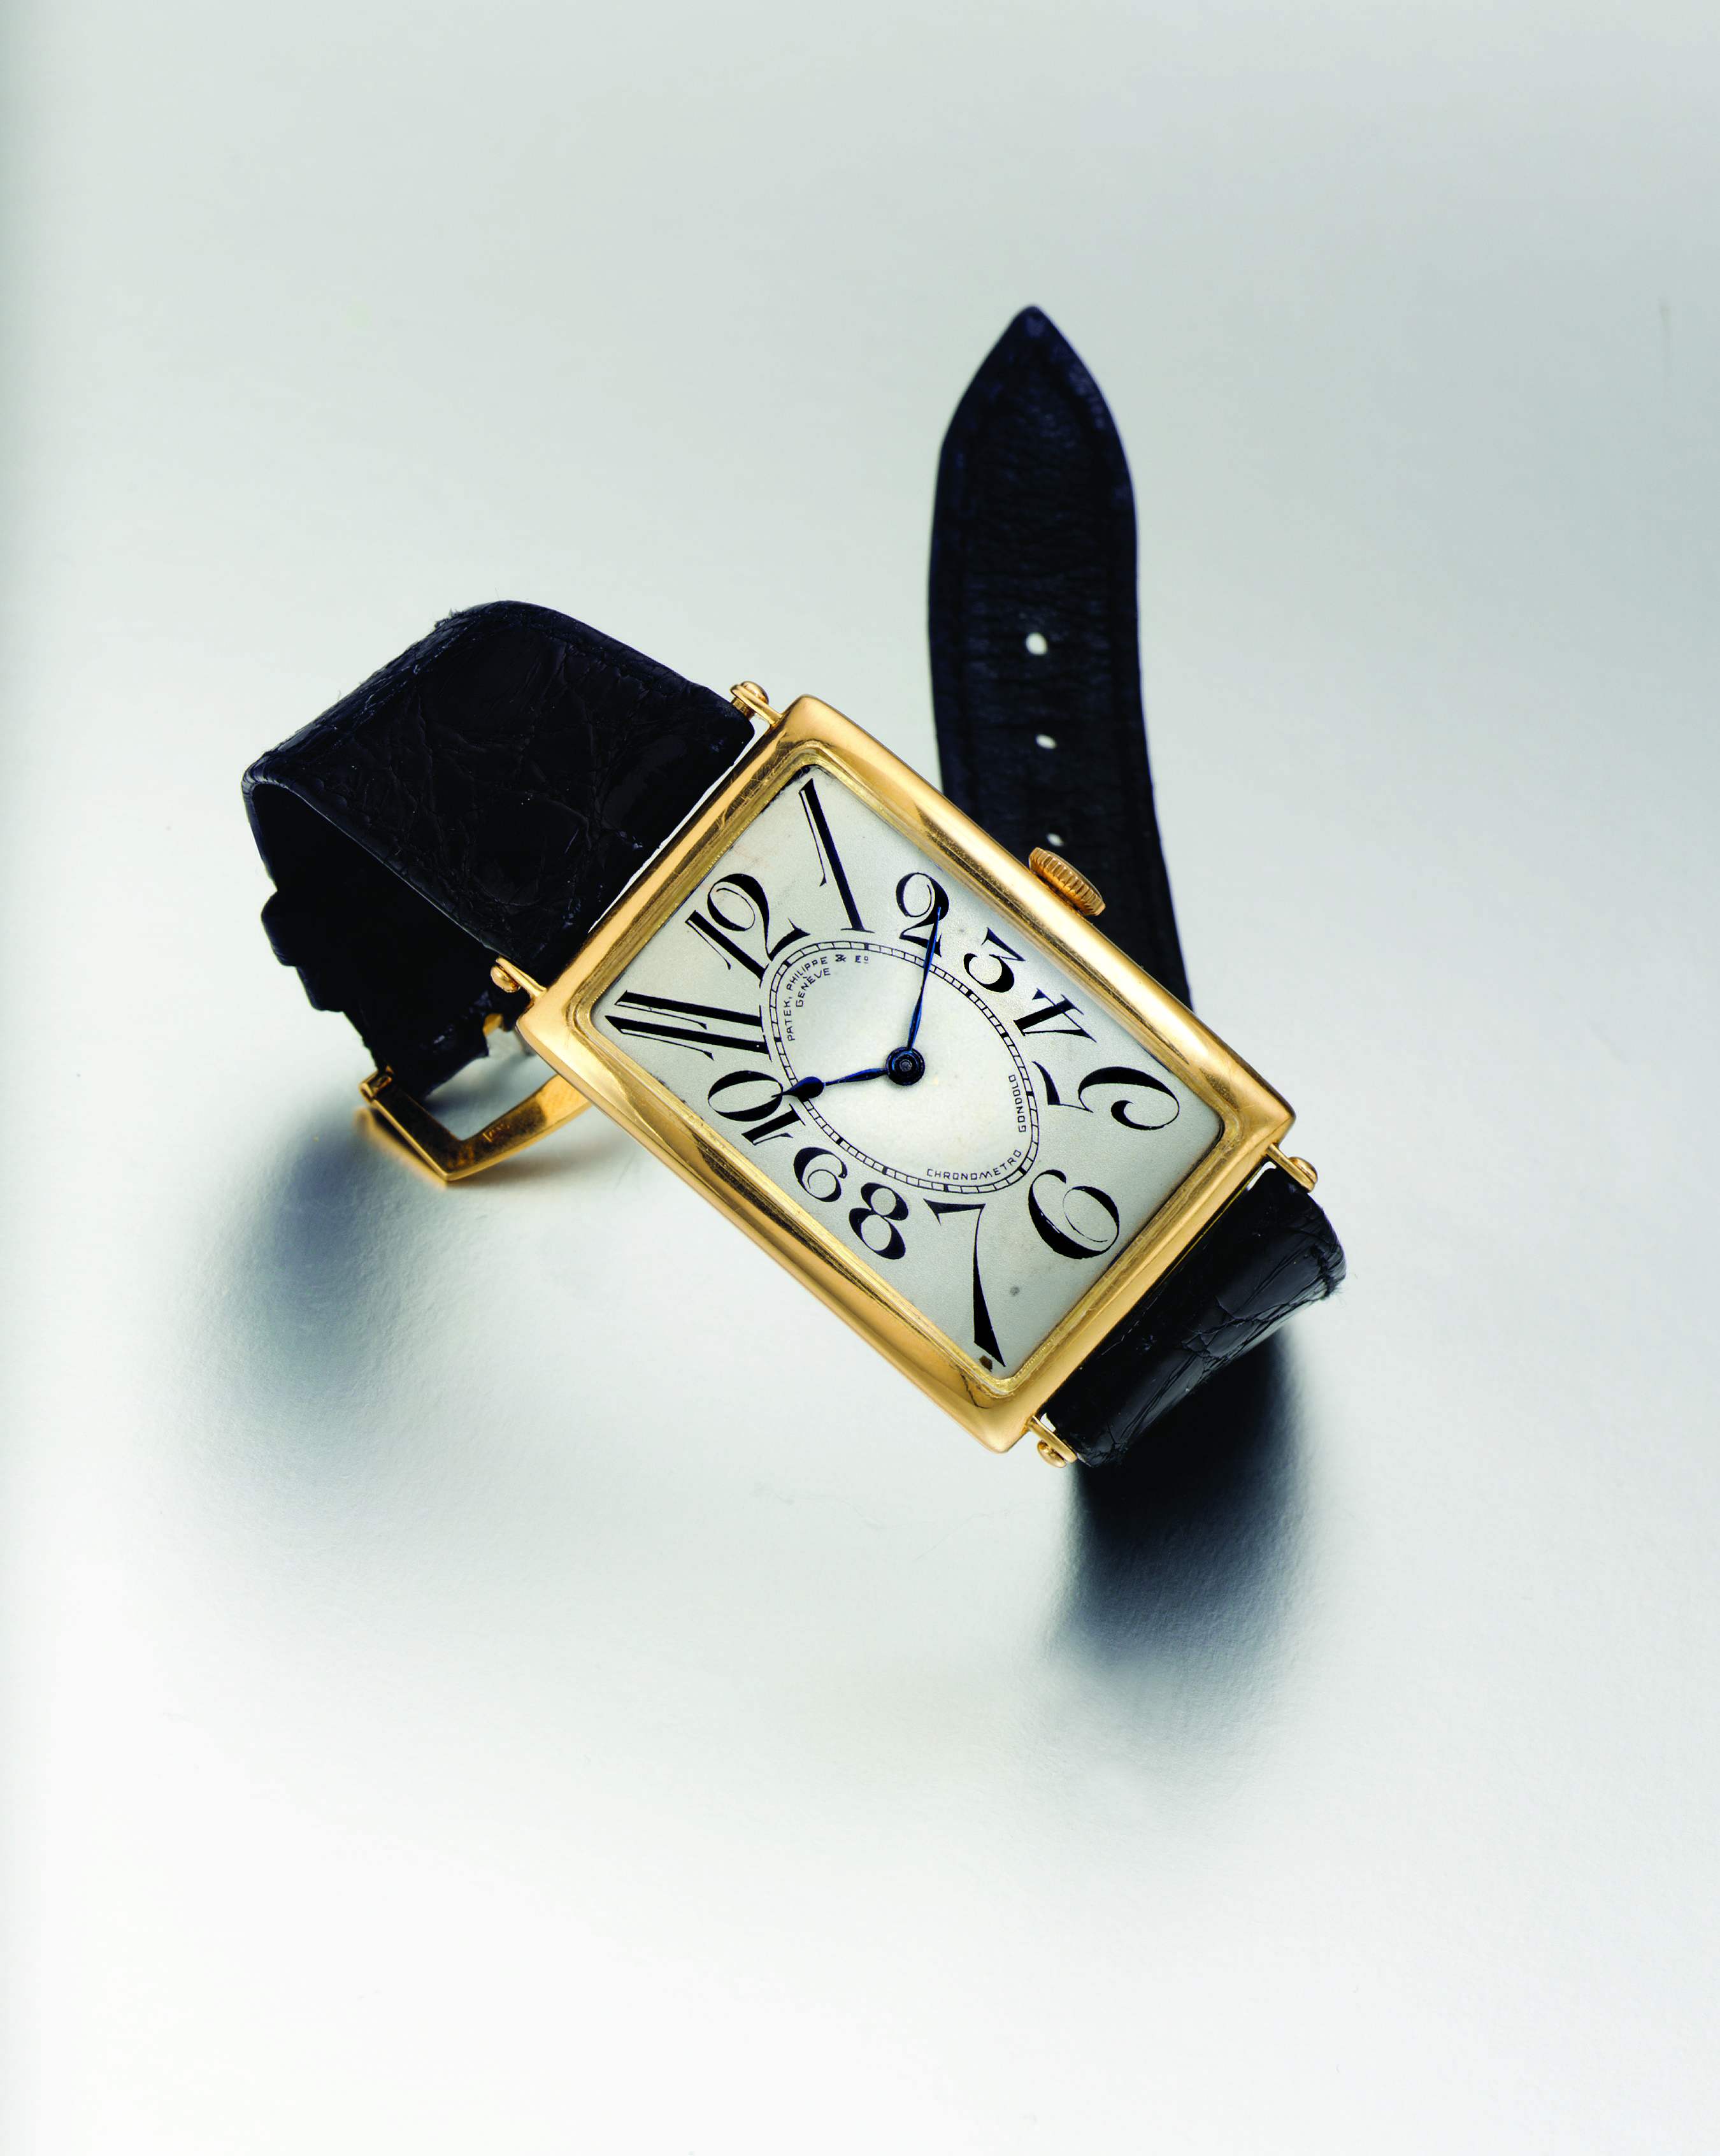 Patek Phillipe retailed in 1924